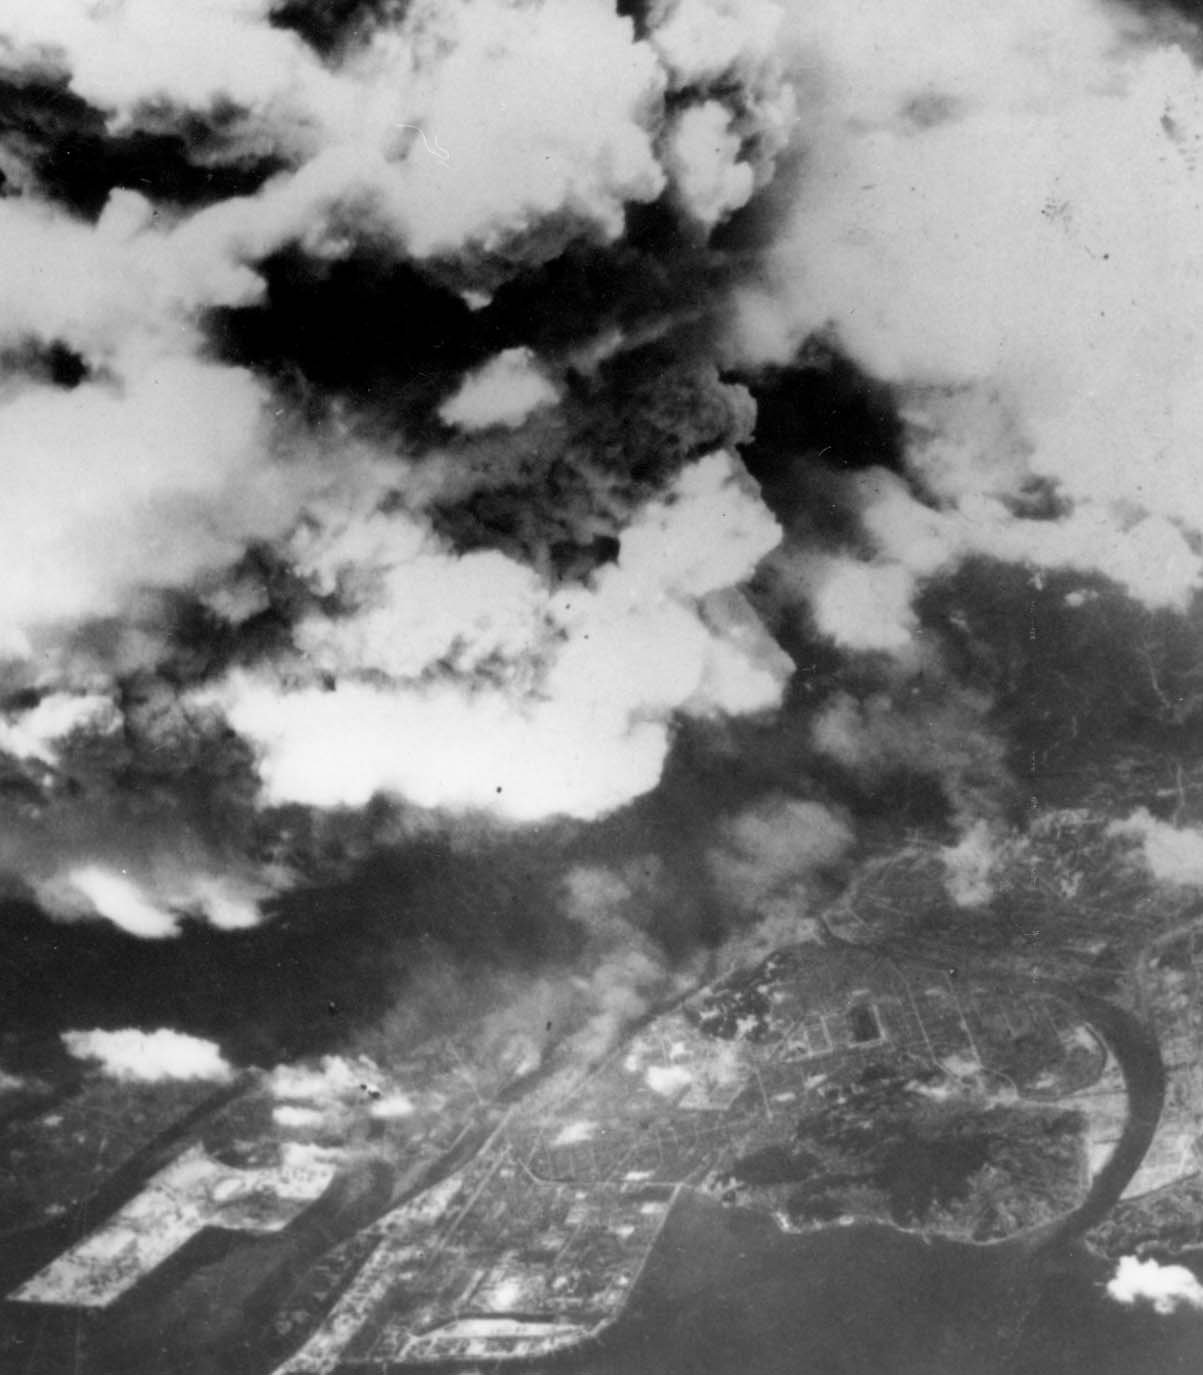 an analysis of the book of hiroshimas atomic bomb incident The book hiroshima by john hersey was originally featured in article form and published in the magazine the new hiroshima atomic bomb damage - interactive aerial map.